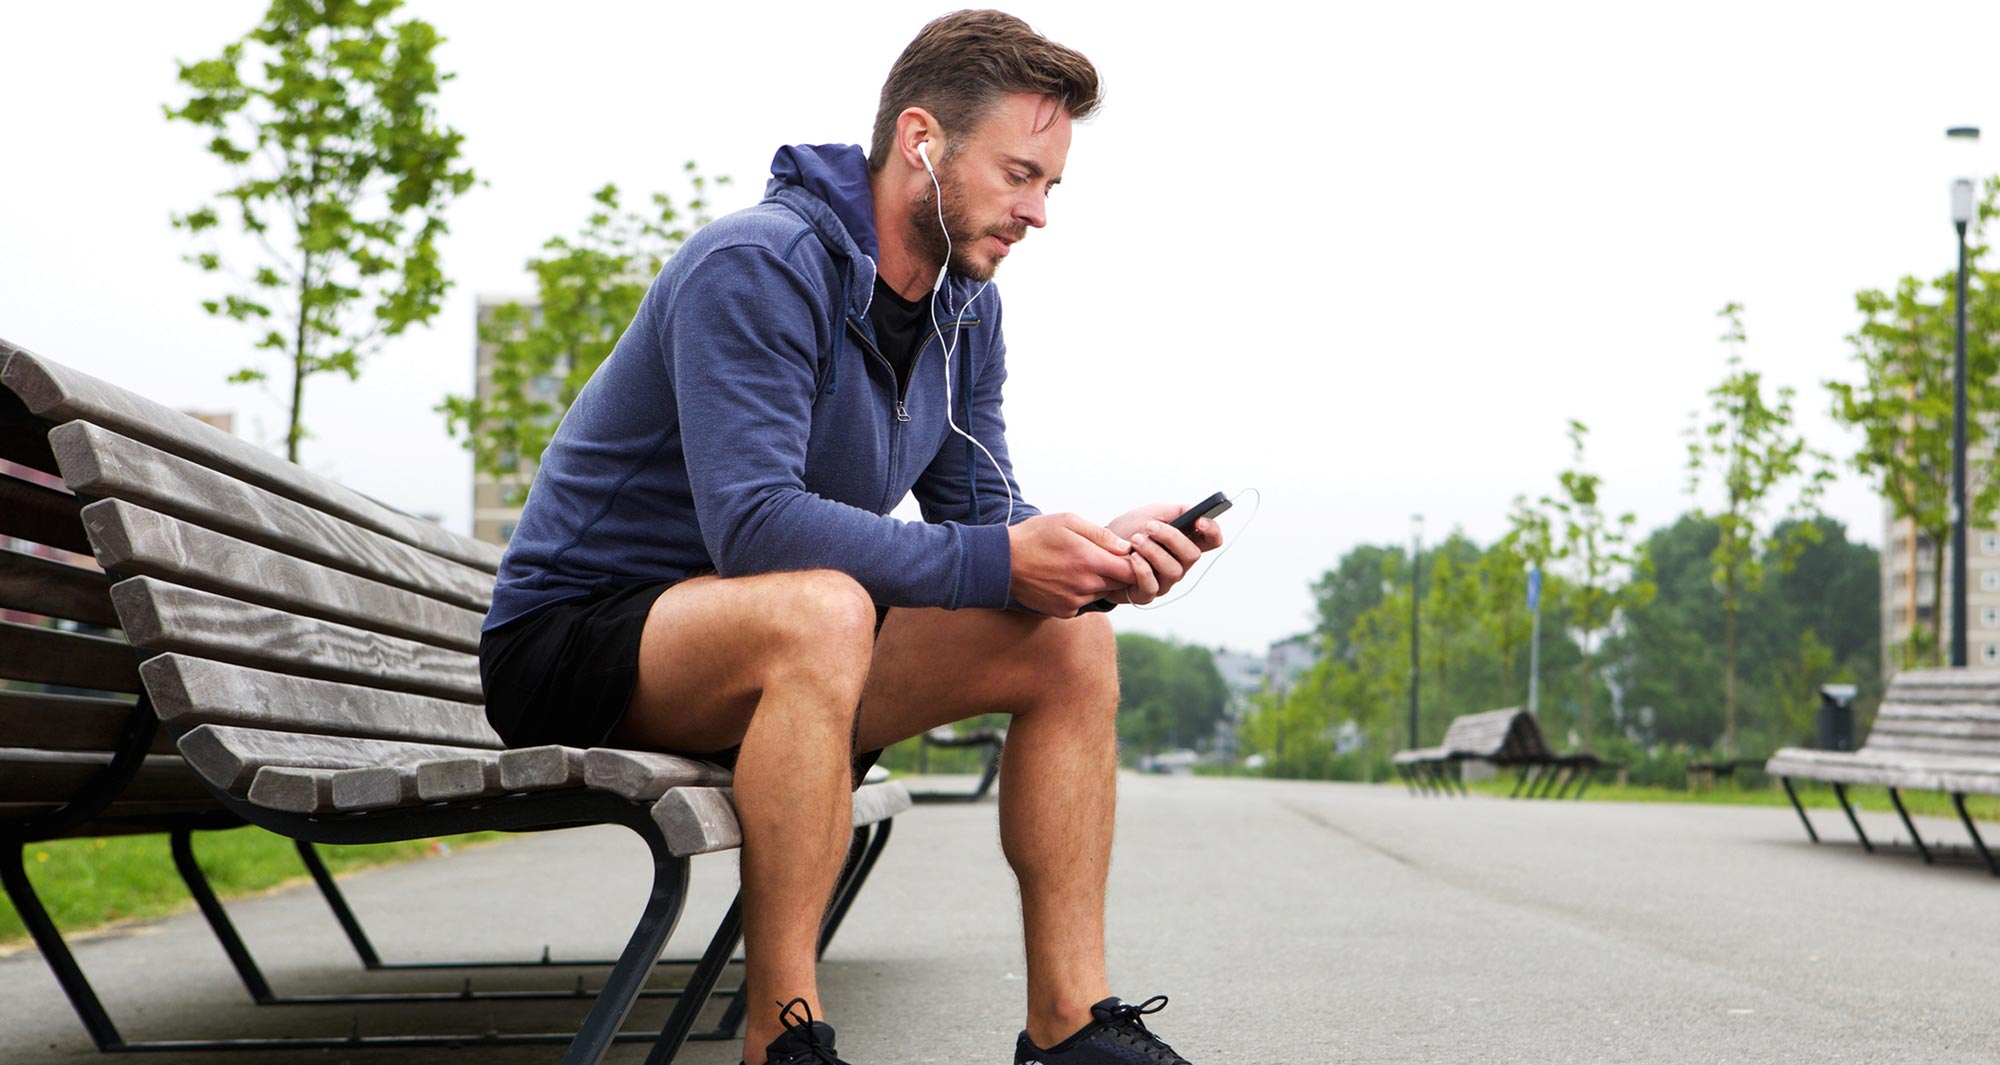 man looking at phone in workout attire